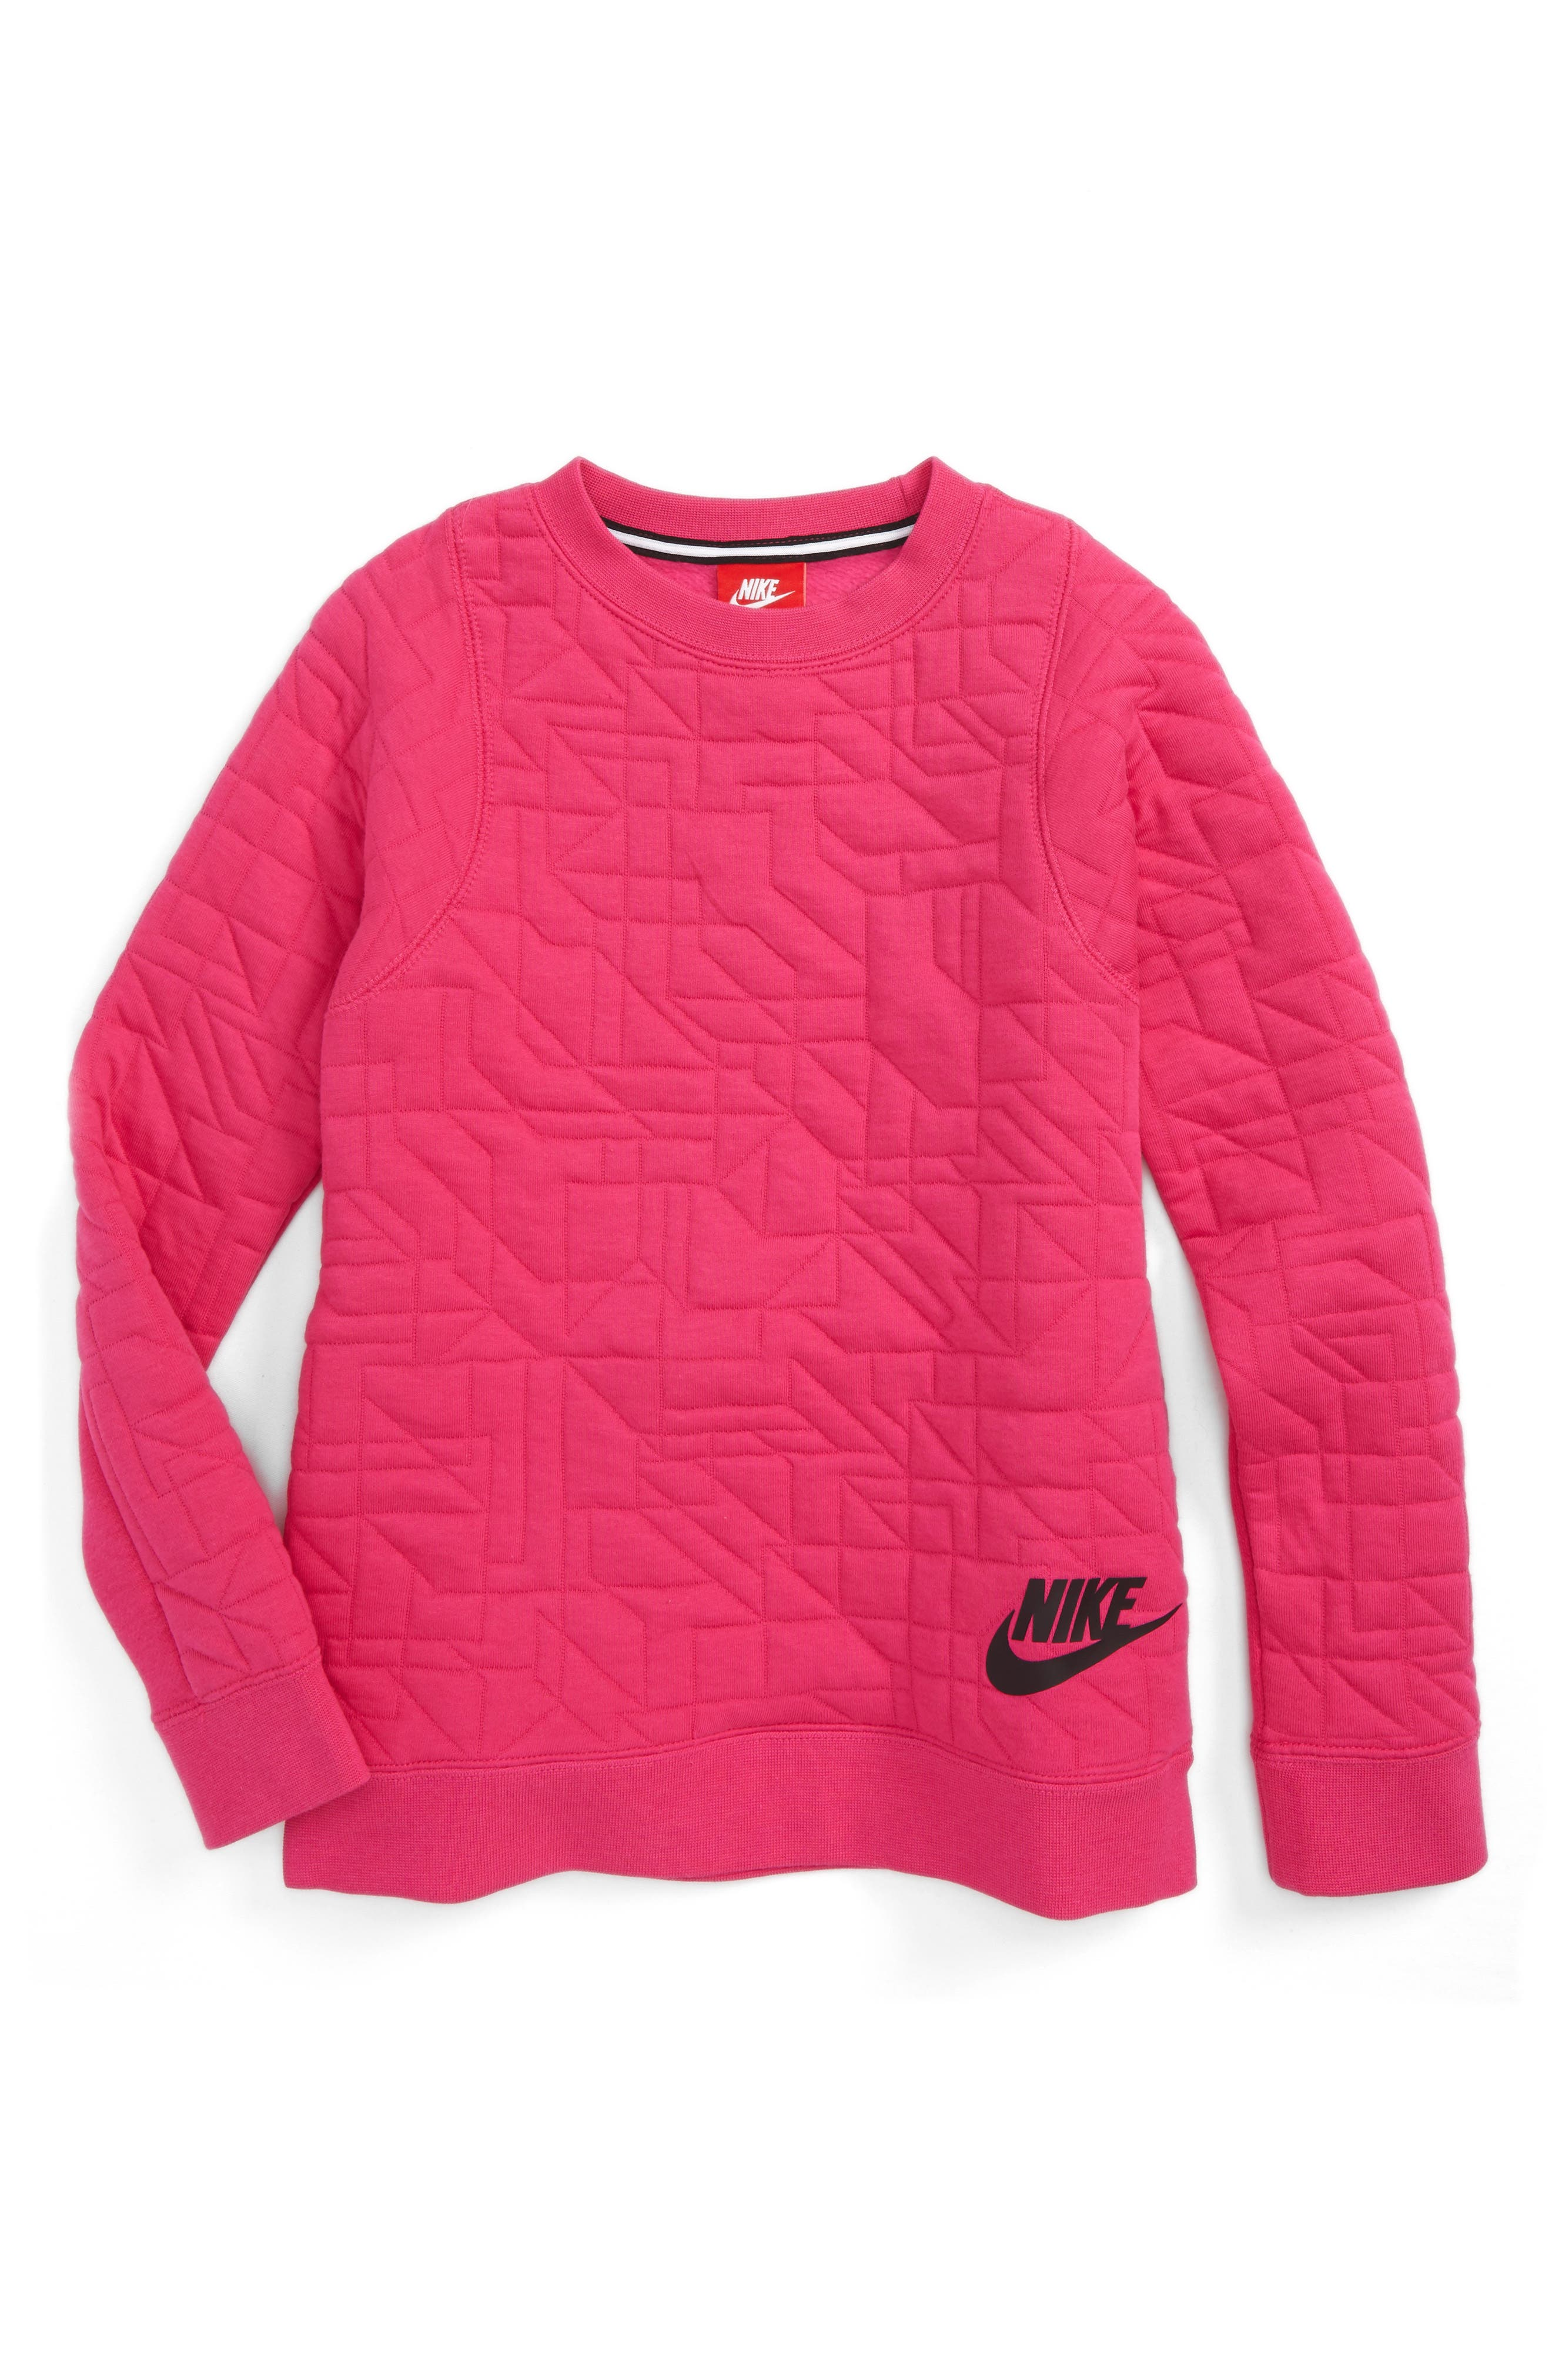 Alternate Image 1 Selected - Nike Modern Matelassé Sweatshirt (Big Girls)